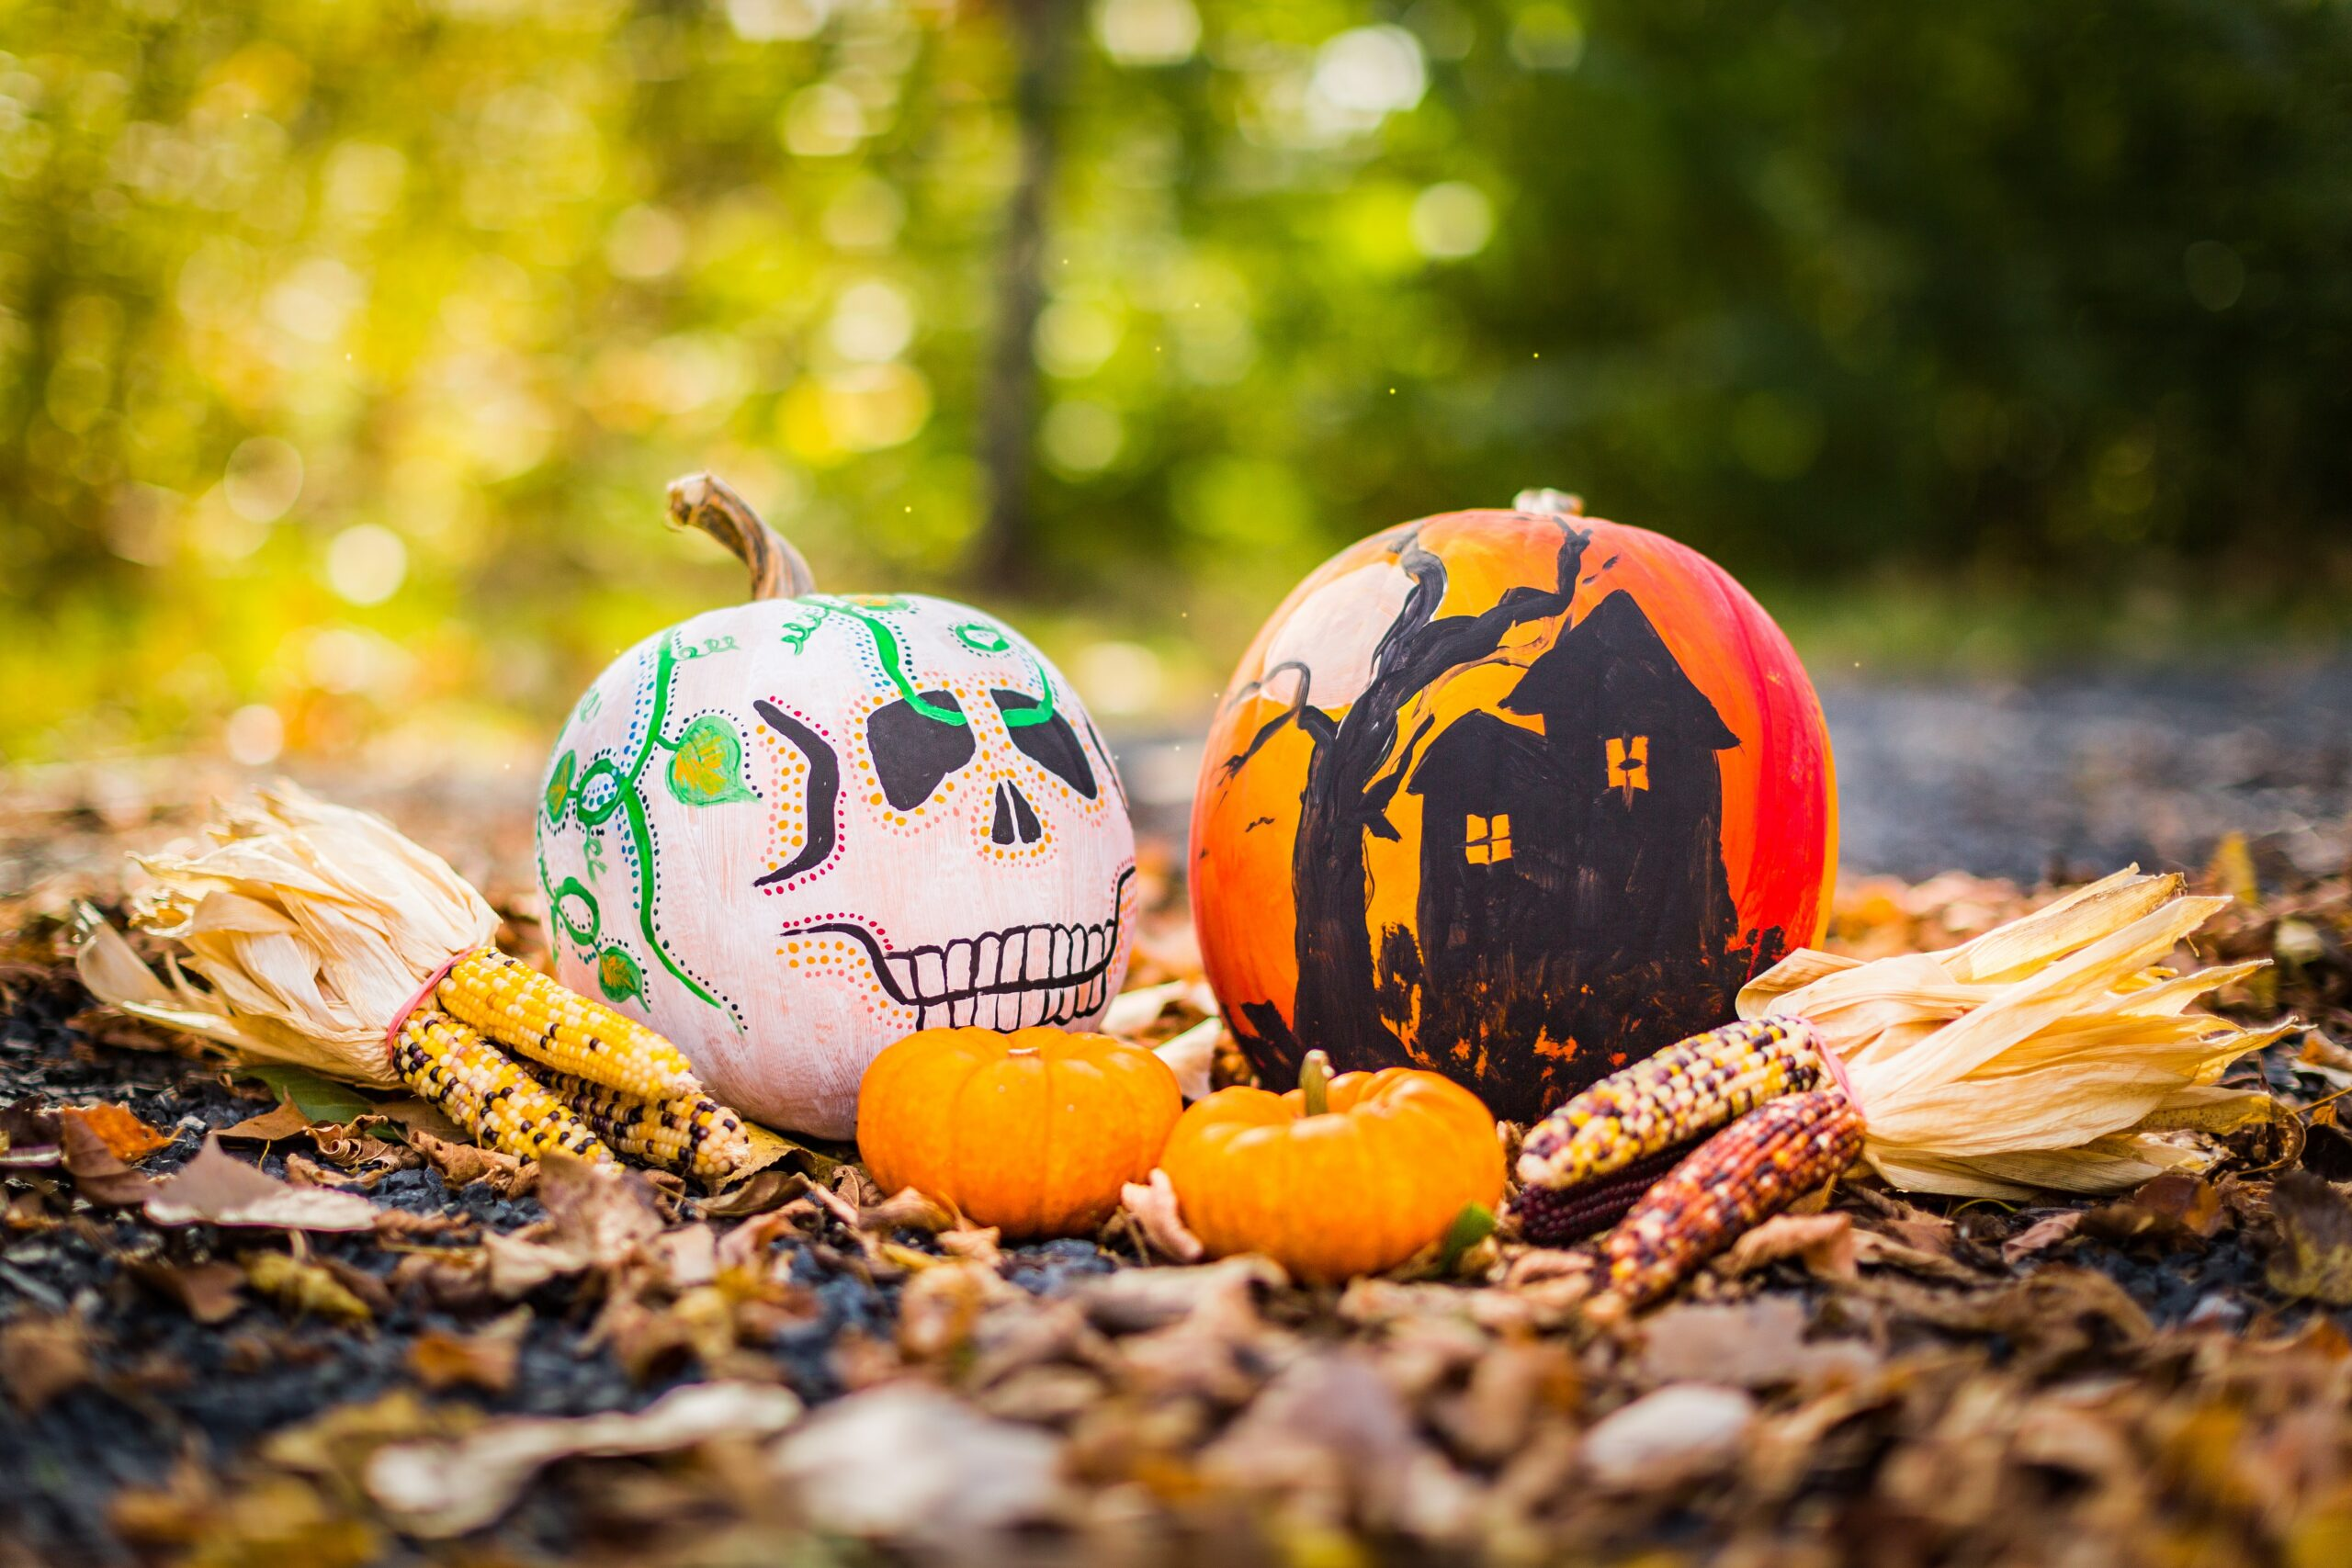 painted pumpkins celebrate halloween at home evolve blog